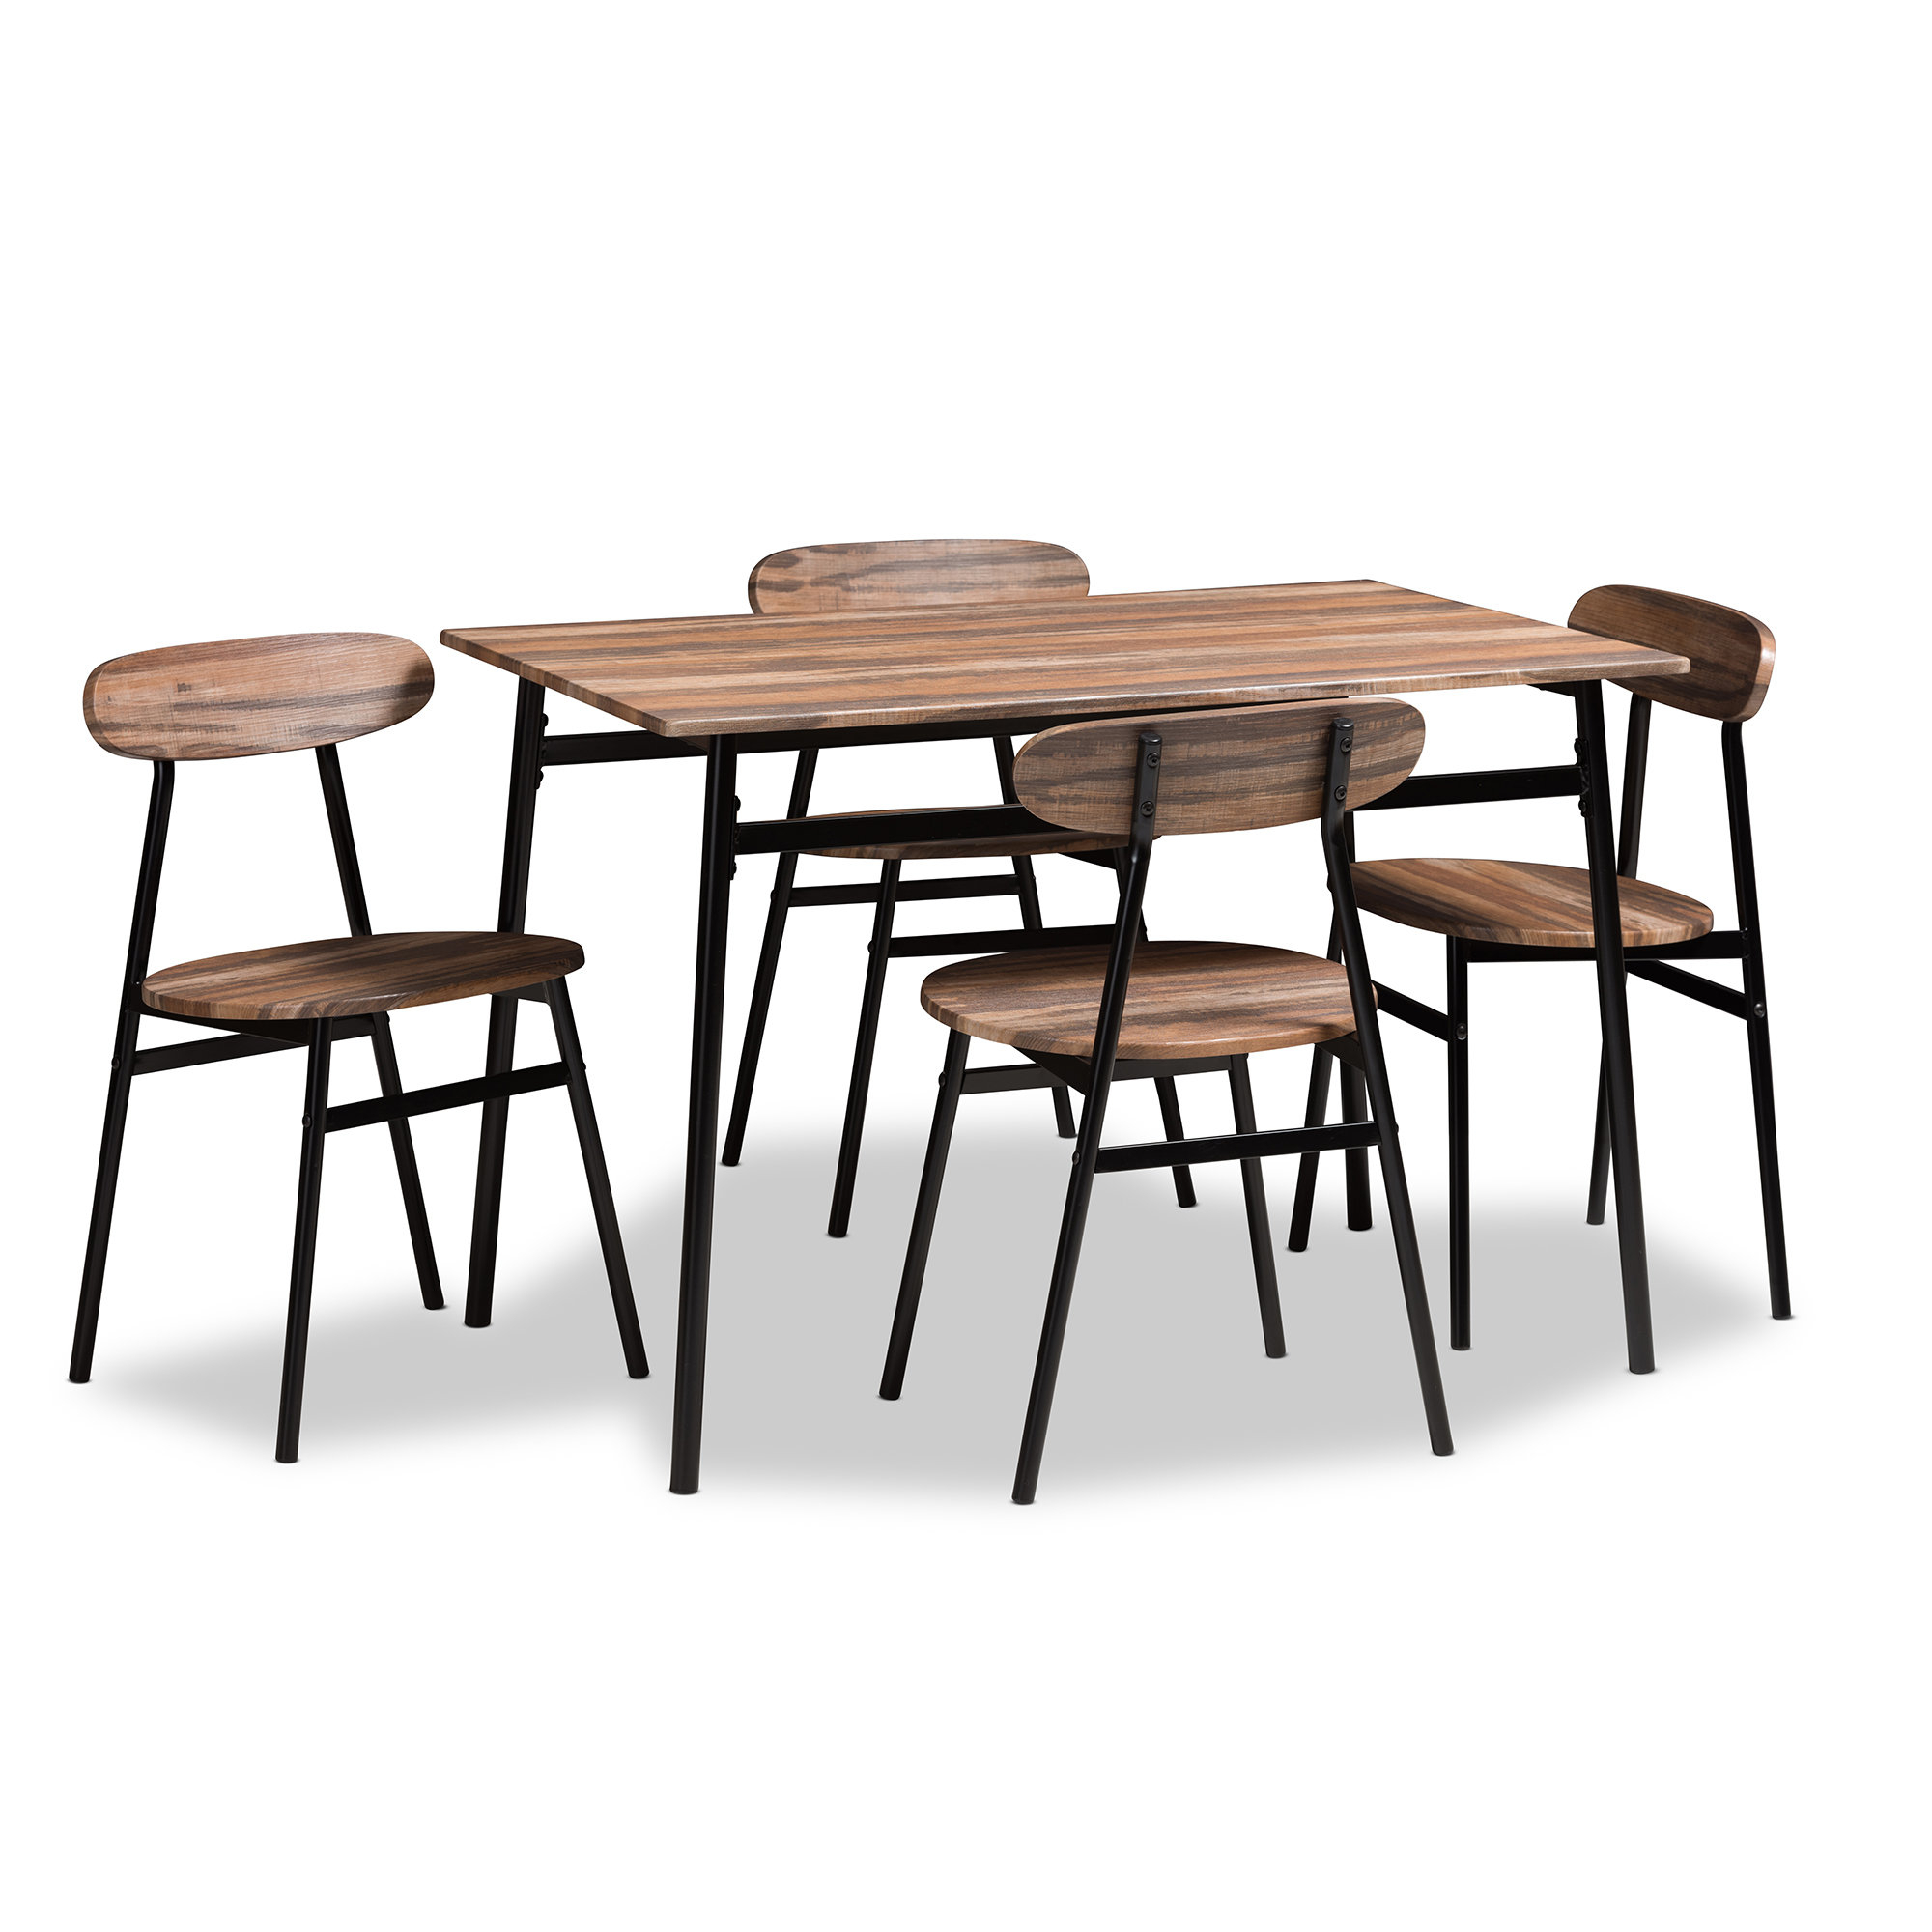 Best And Newest Telauges 5 Piece Dining Set Regarding Taulbee 5 Piece Dining Sets (Gallery 11 of 20)